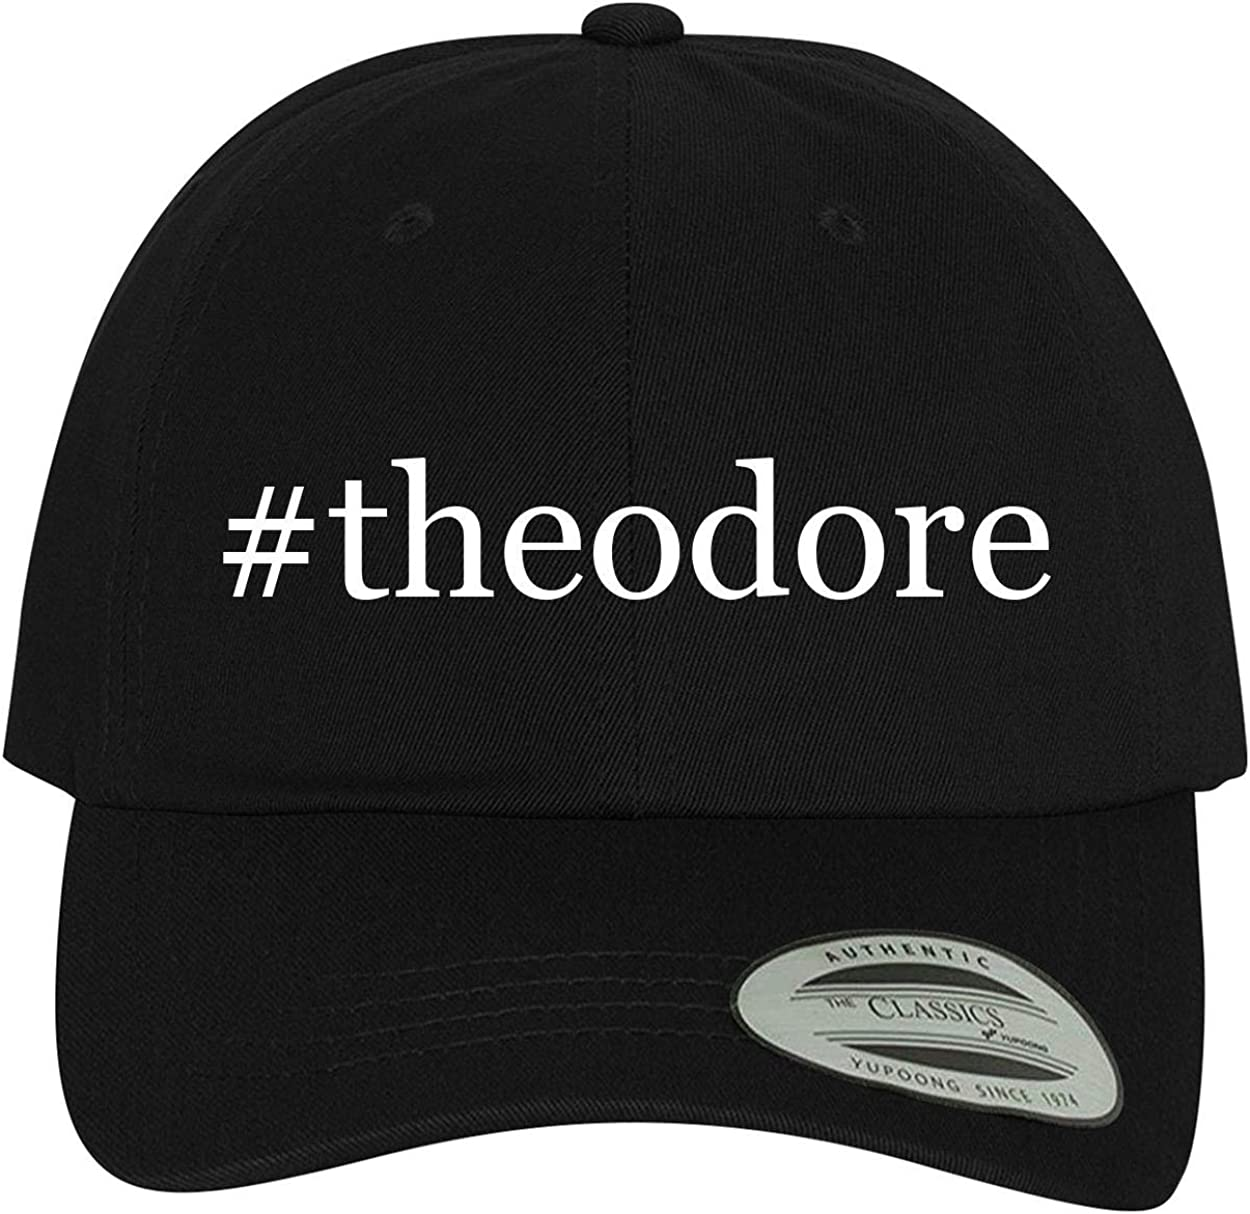 Comfortable Dad Hat Baseball Cap BH Cool Designs #Theodore